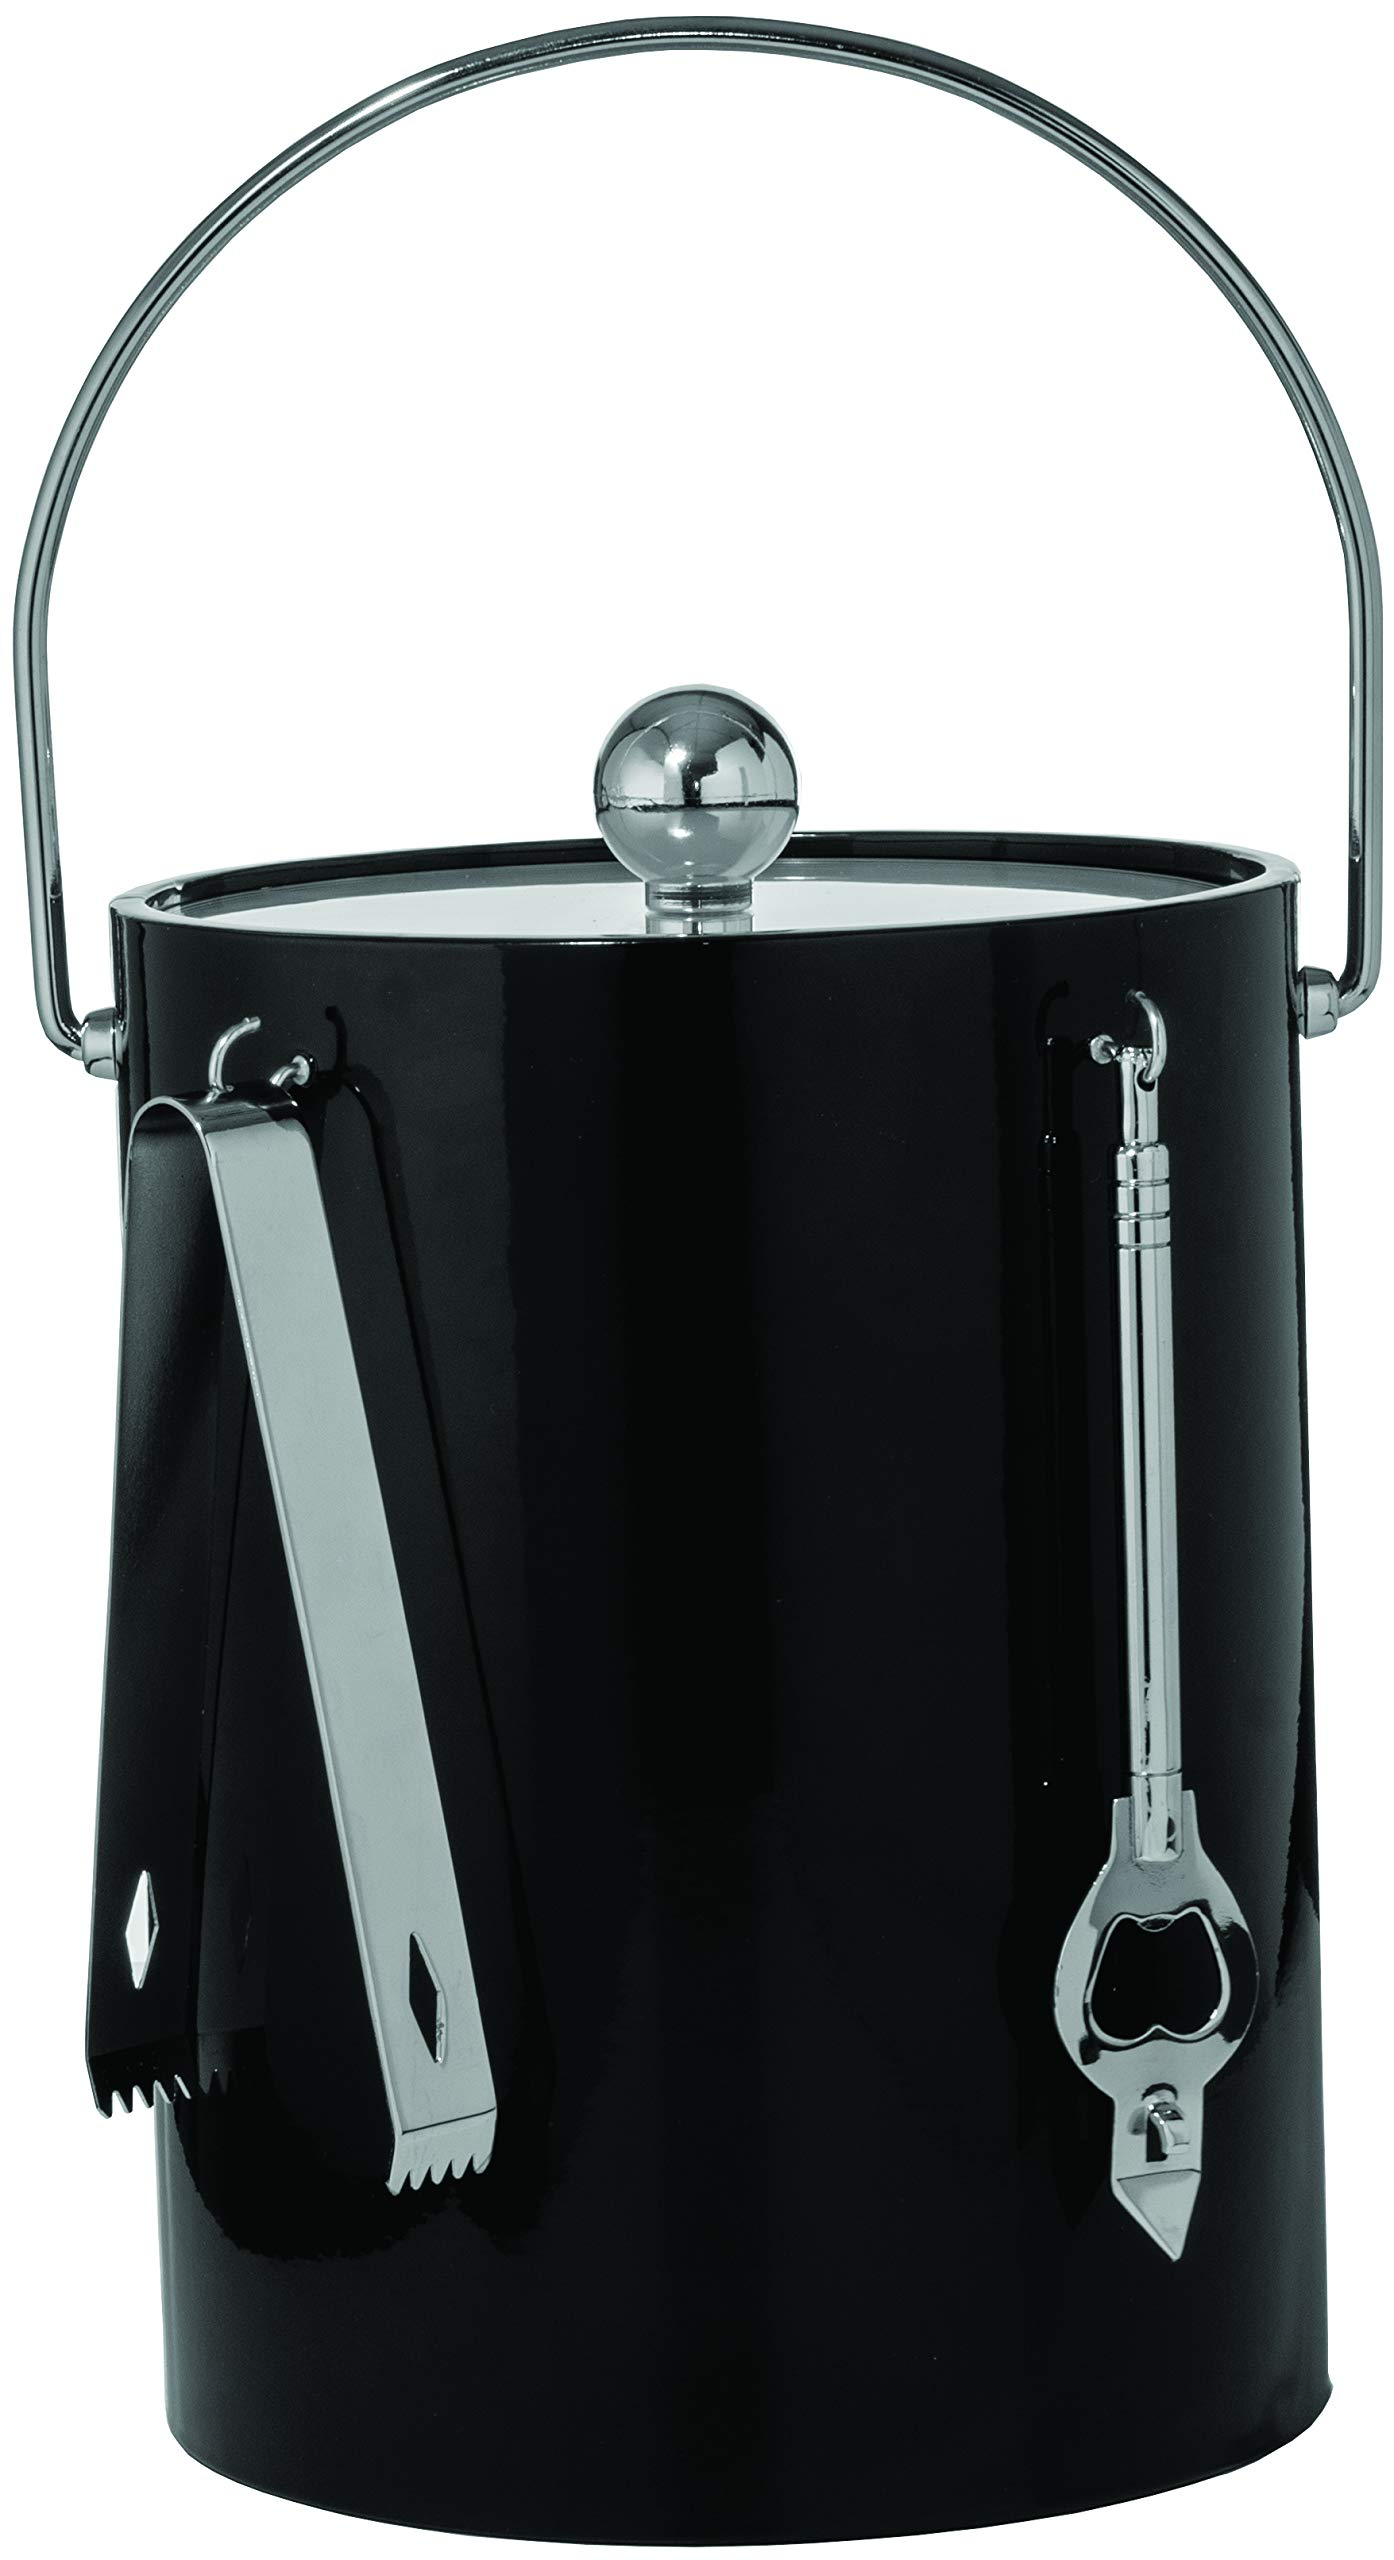 Hand Made In USA Black Double Walled 5-Quart Insulated Ice Bucket With Ice Tongs & Bottle Opener